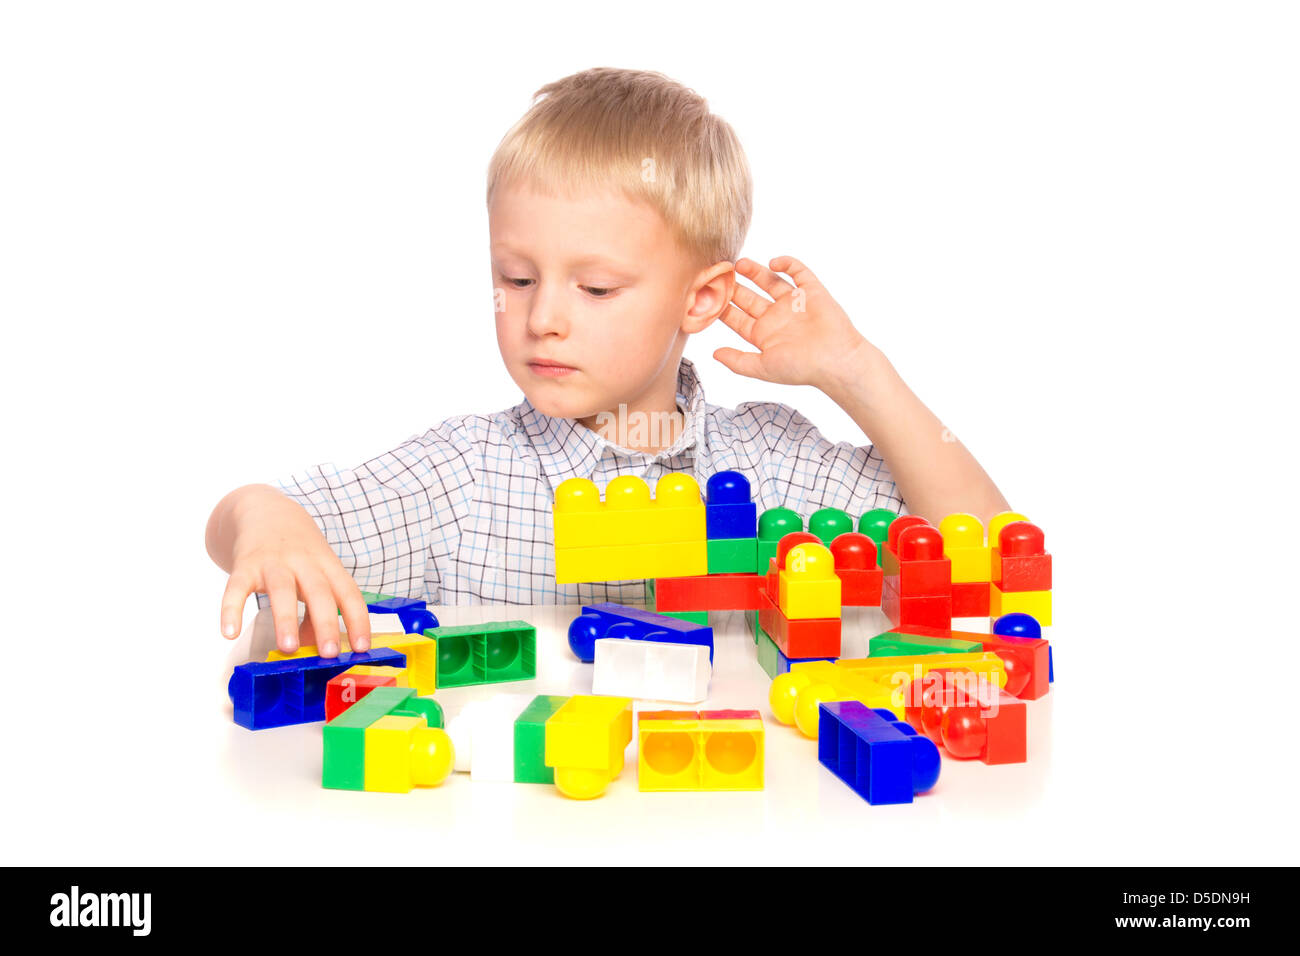 boy child build play constructor plastic creative - Stock Image